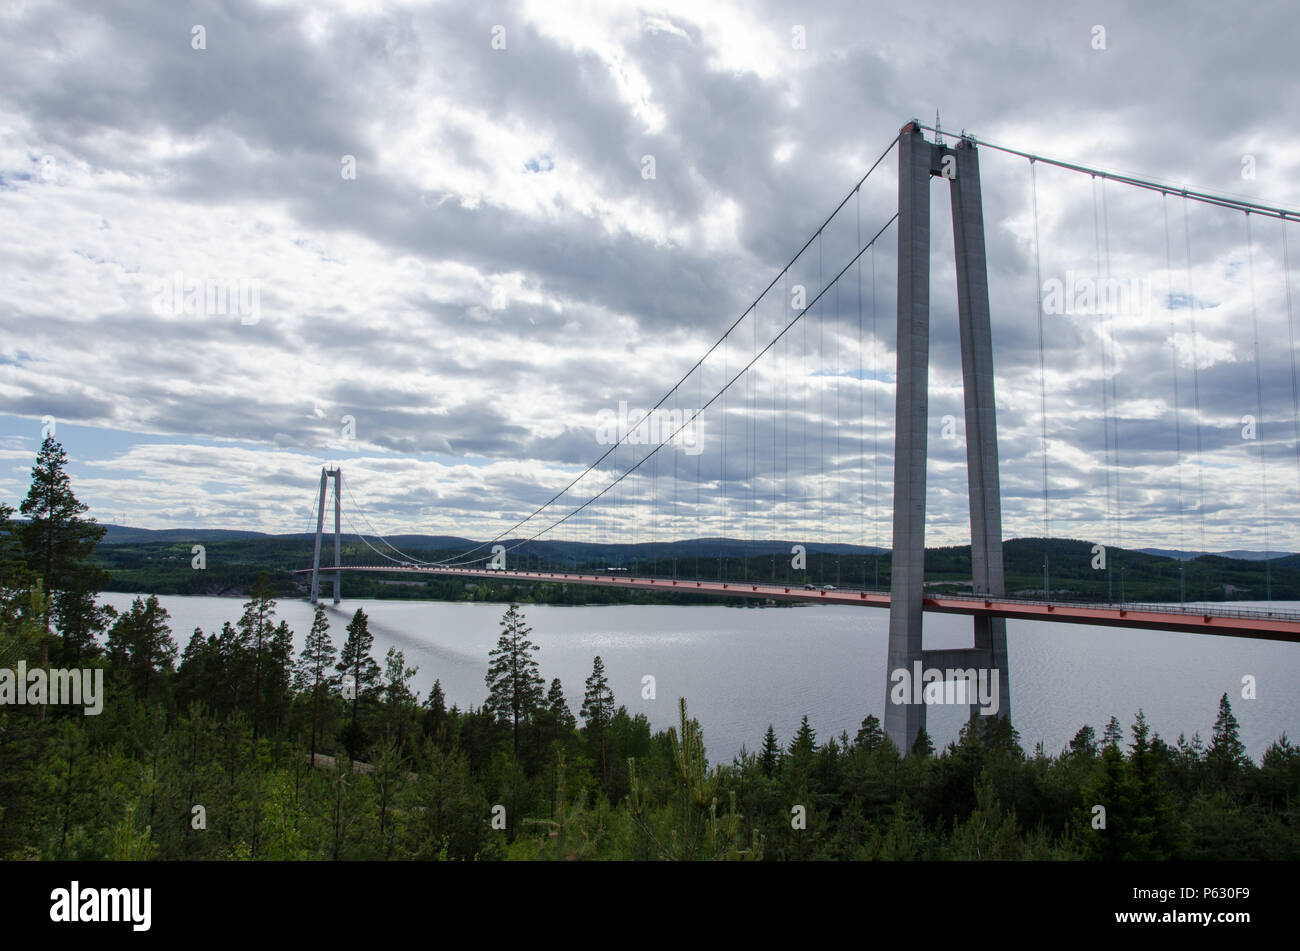 High coast, Sweden - 13 June 2018. The view from Hotel High coast of the bridge over the gulf of Bothnia on a slightly cloudy day - Stock Image